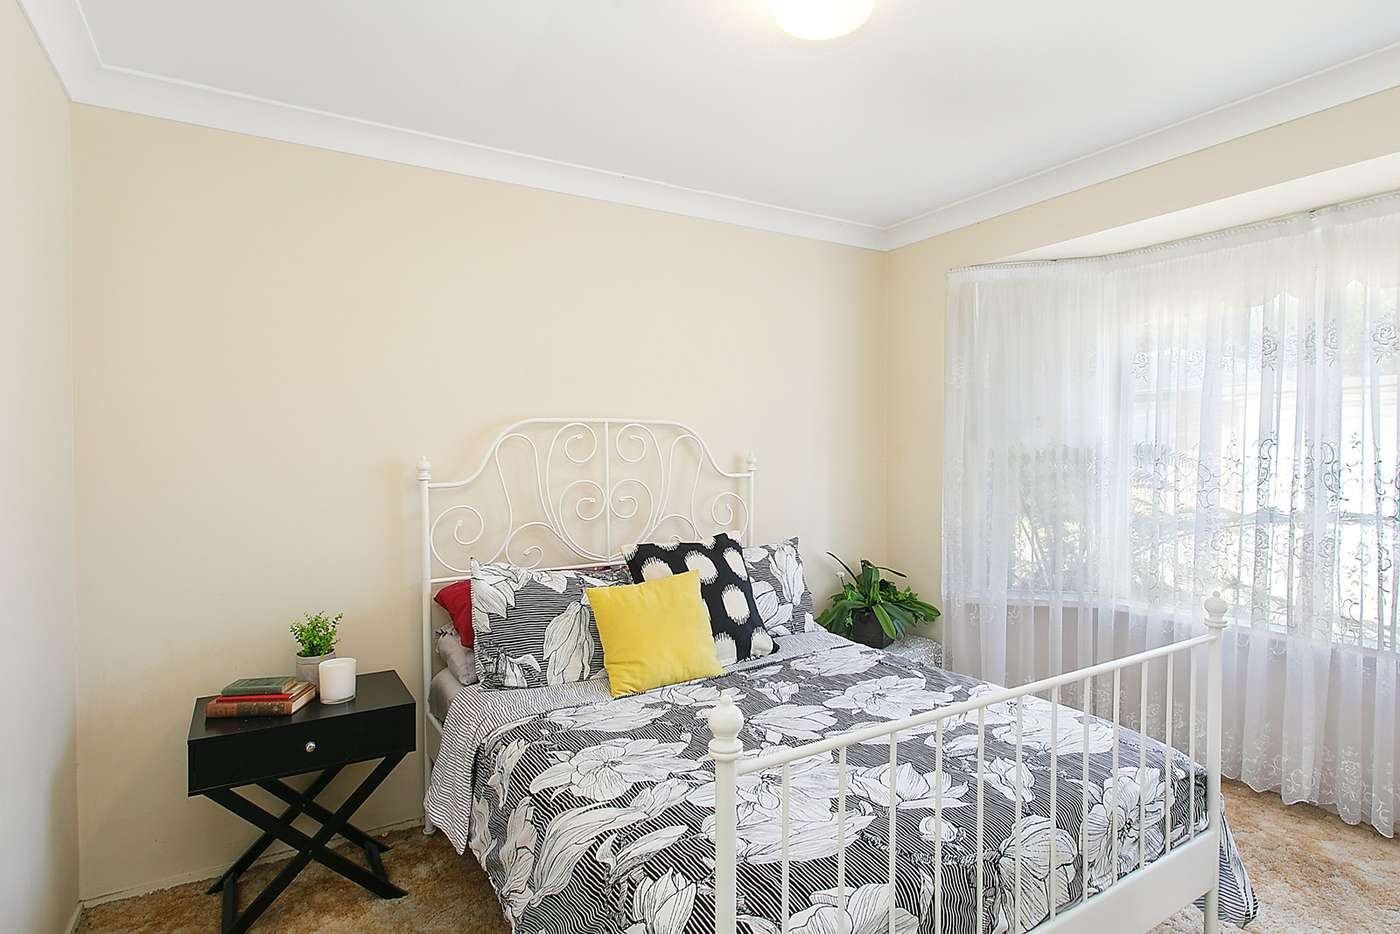 Fifth view of Homely villa listing, 3/38 Oakland Avenue, The Entrance NSW 2261